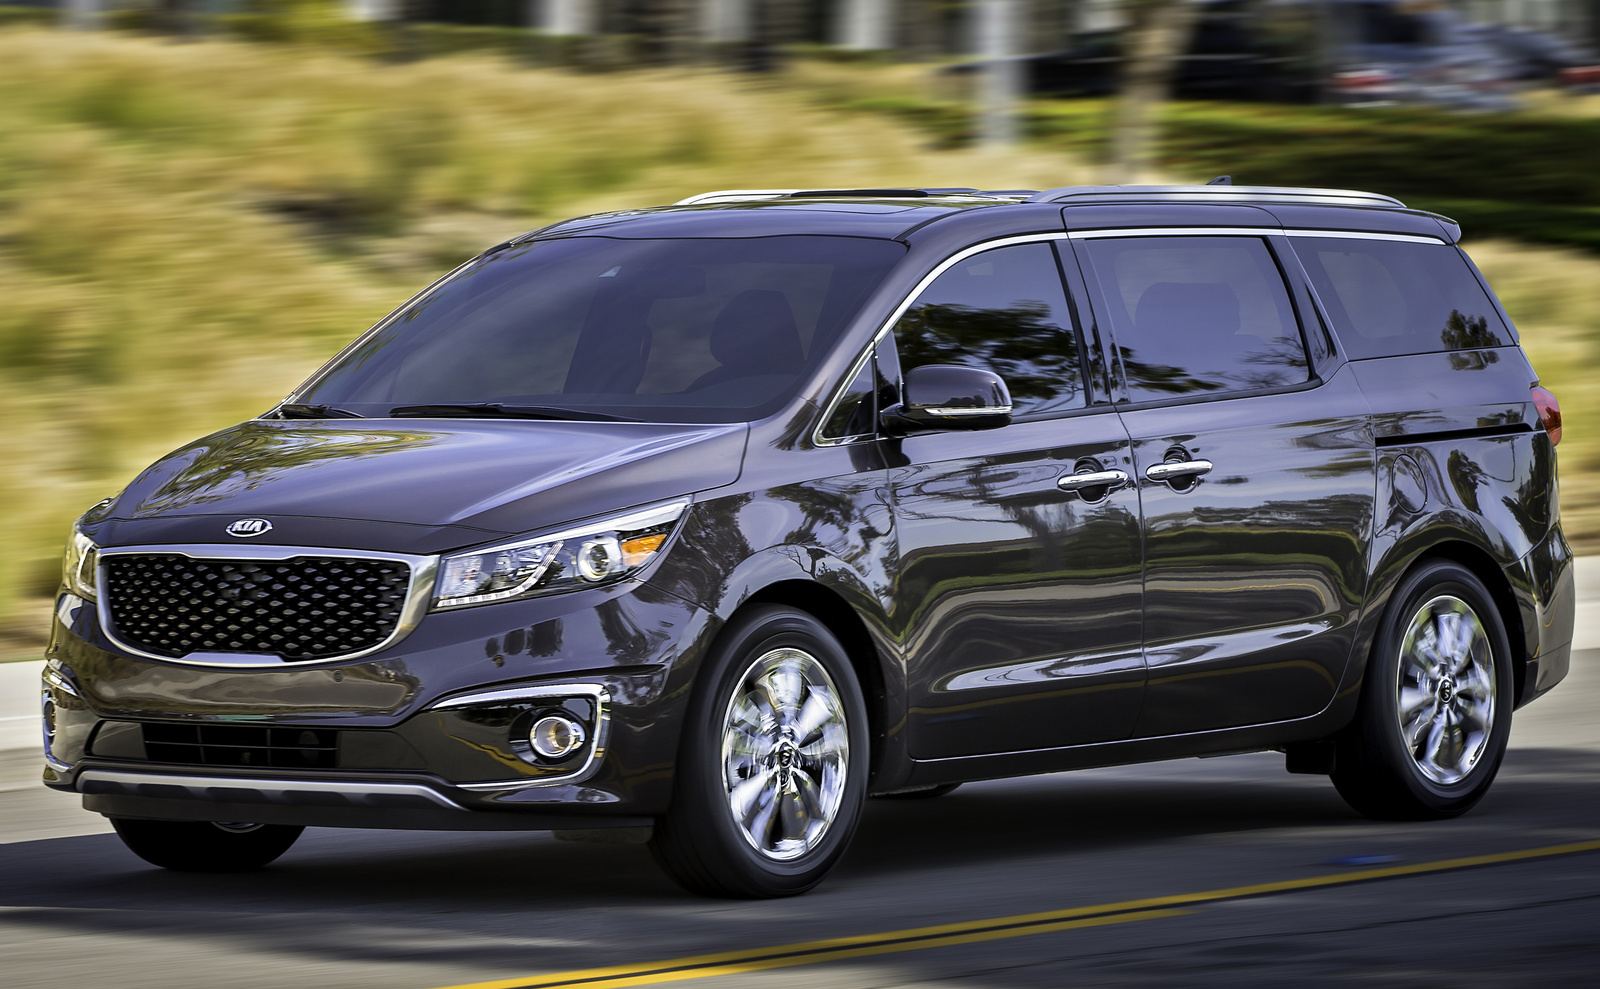 Kia Sedona Engines Car Engines Parts